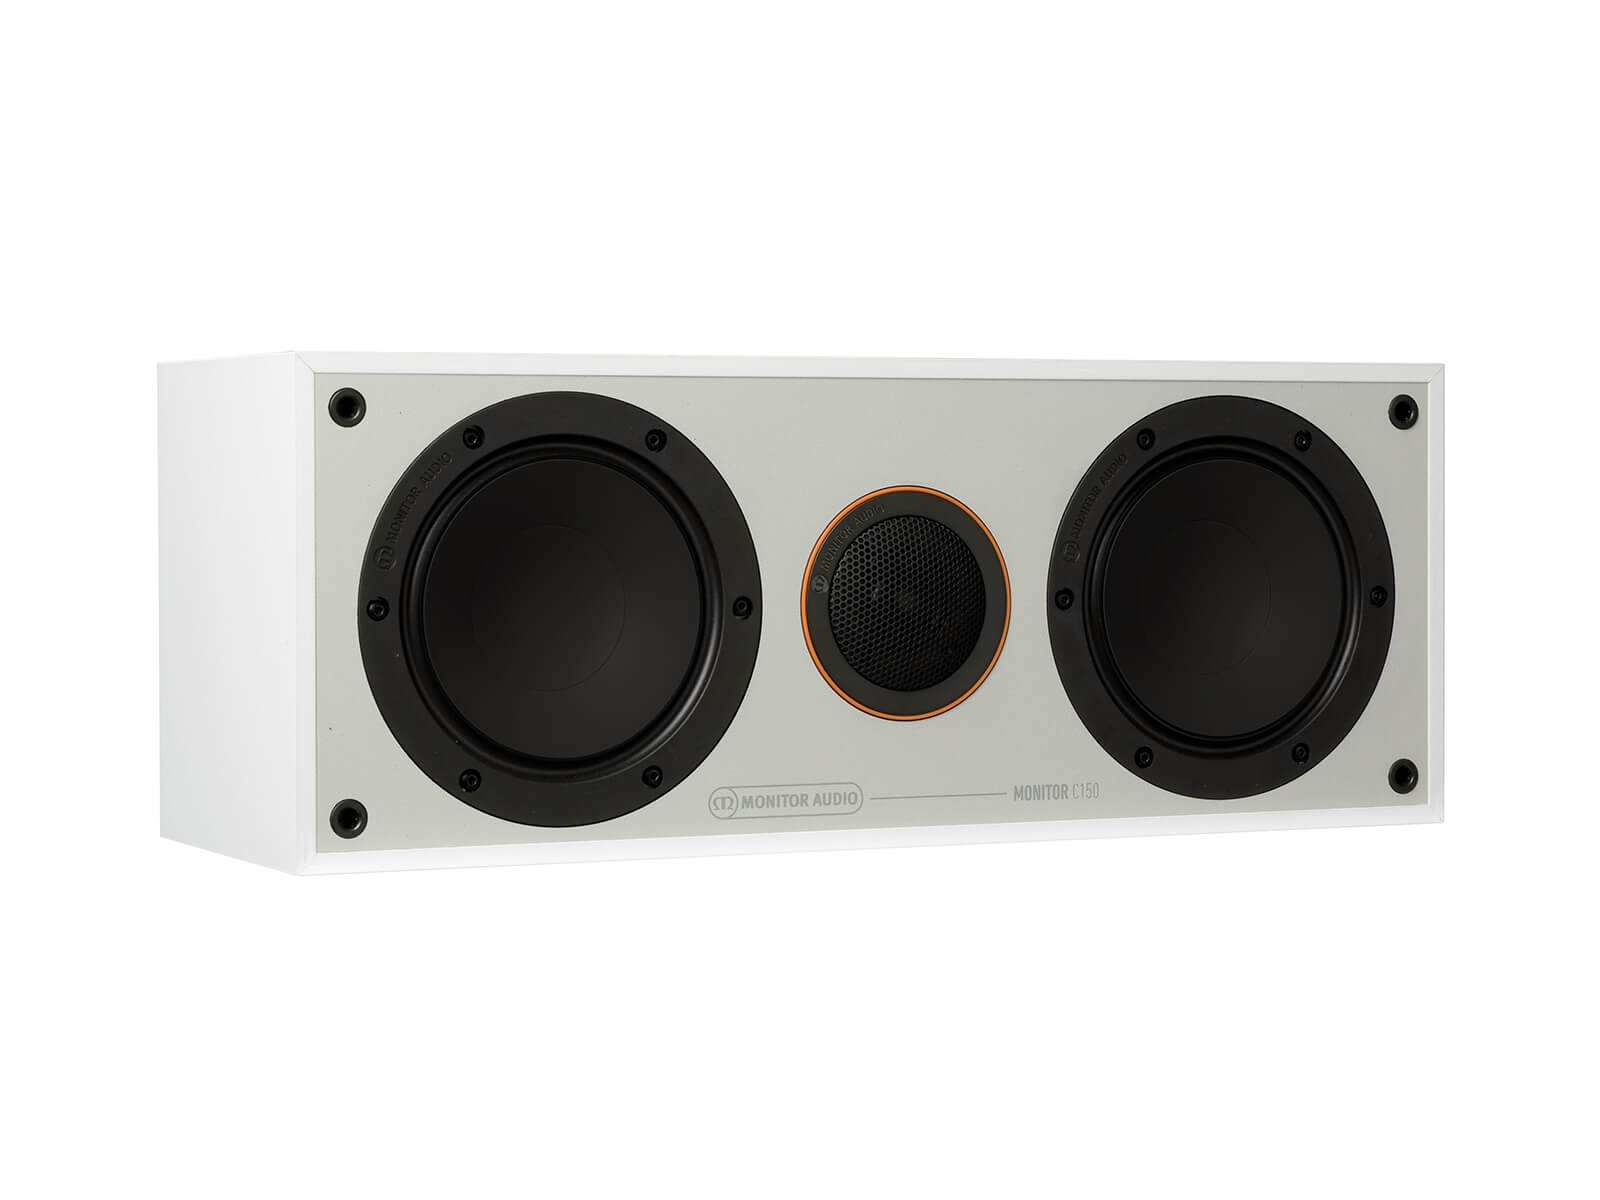 Monitor C150, grille-less centre channel speakers, with a white finish.